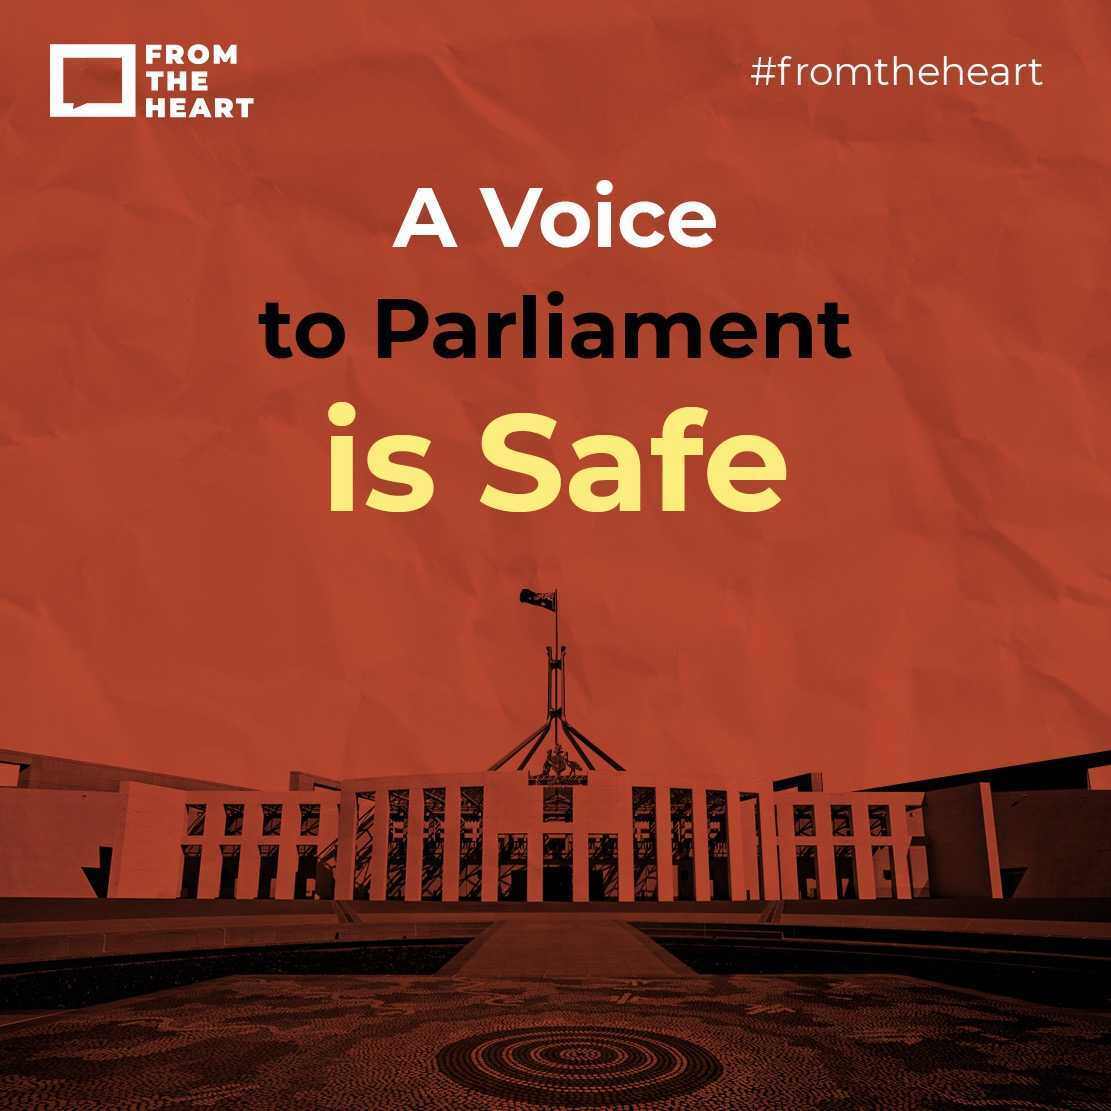 A Voice to Parliament is safe Instagram template